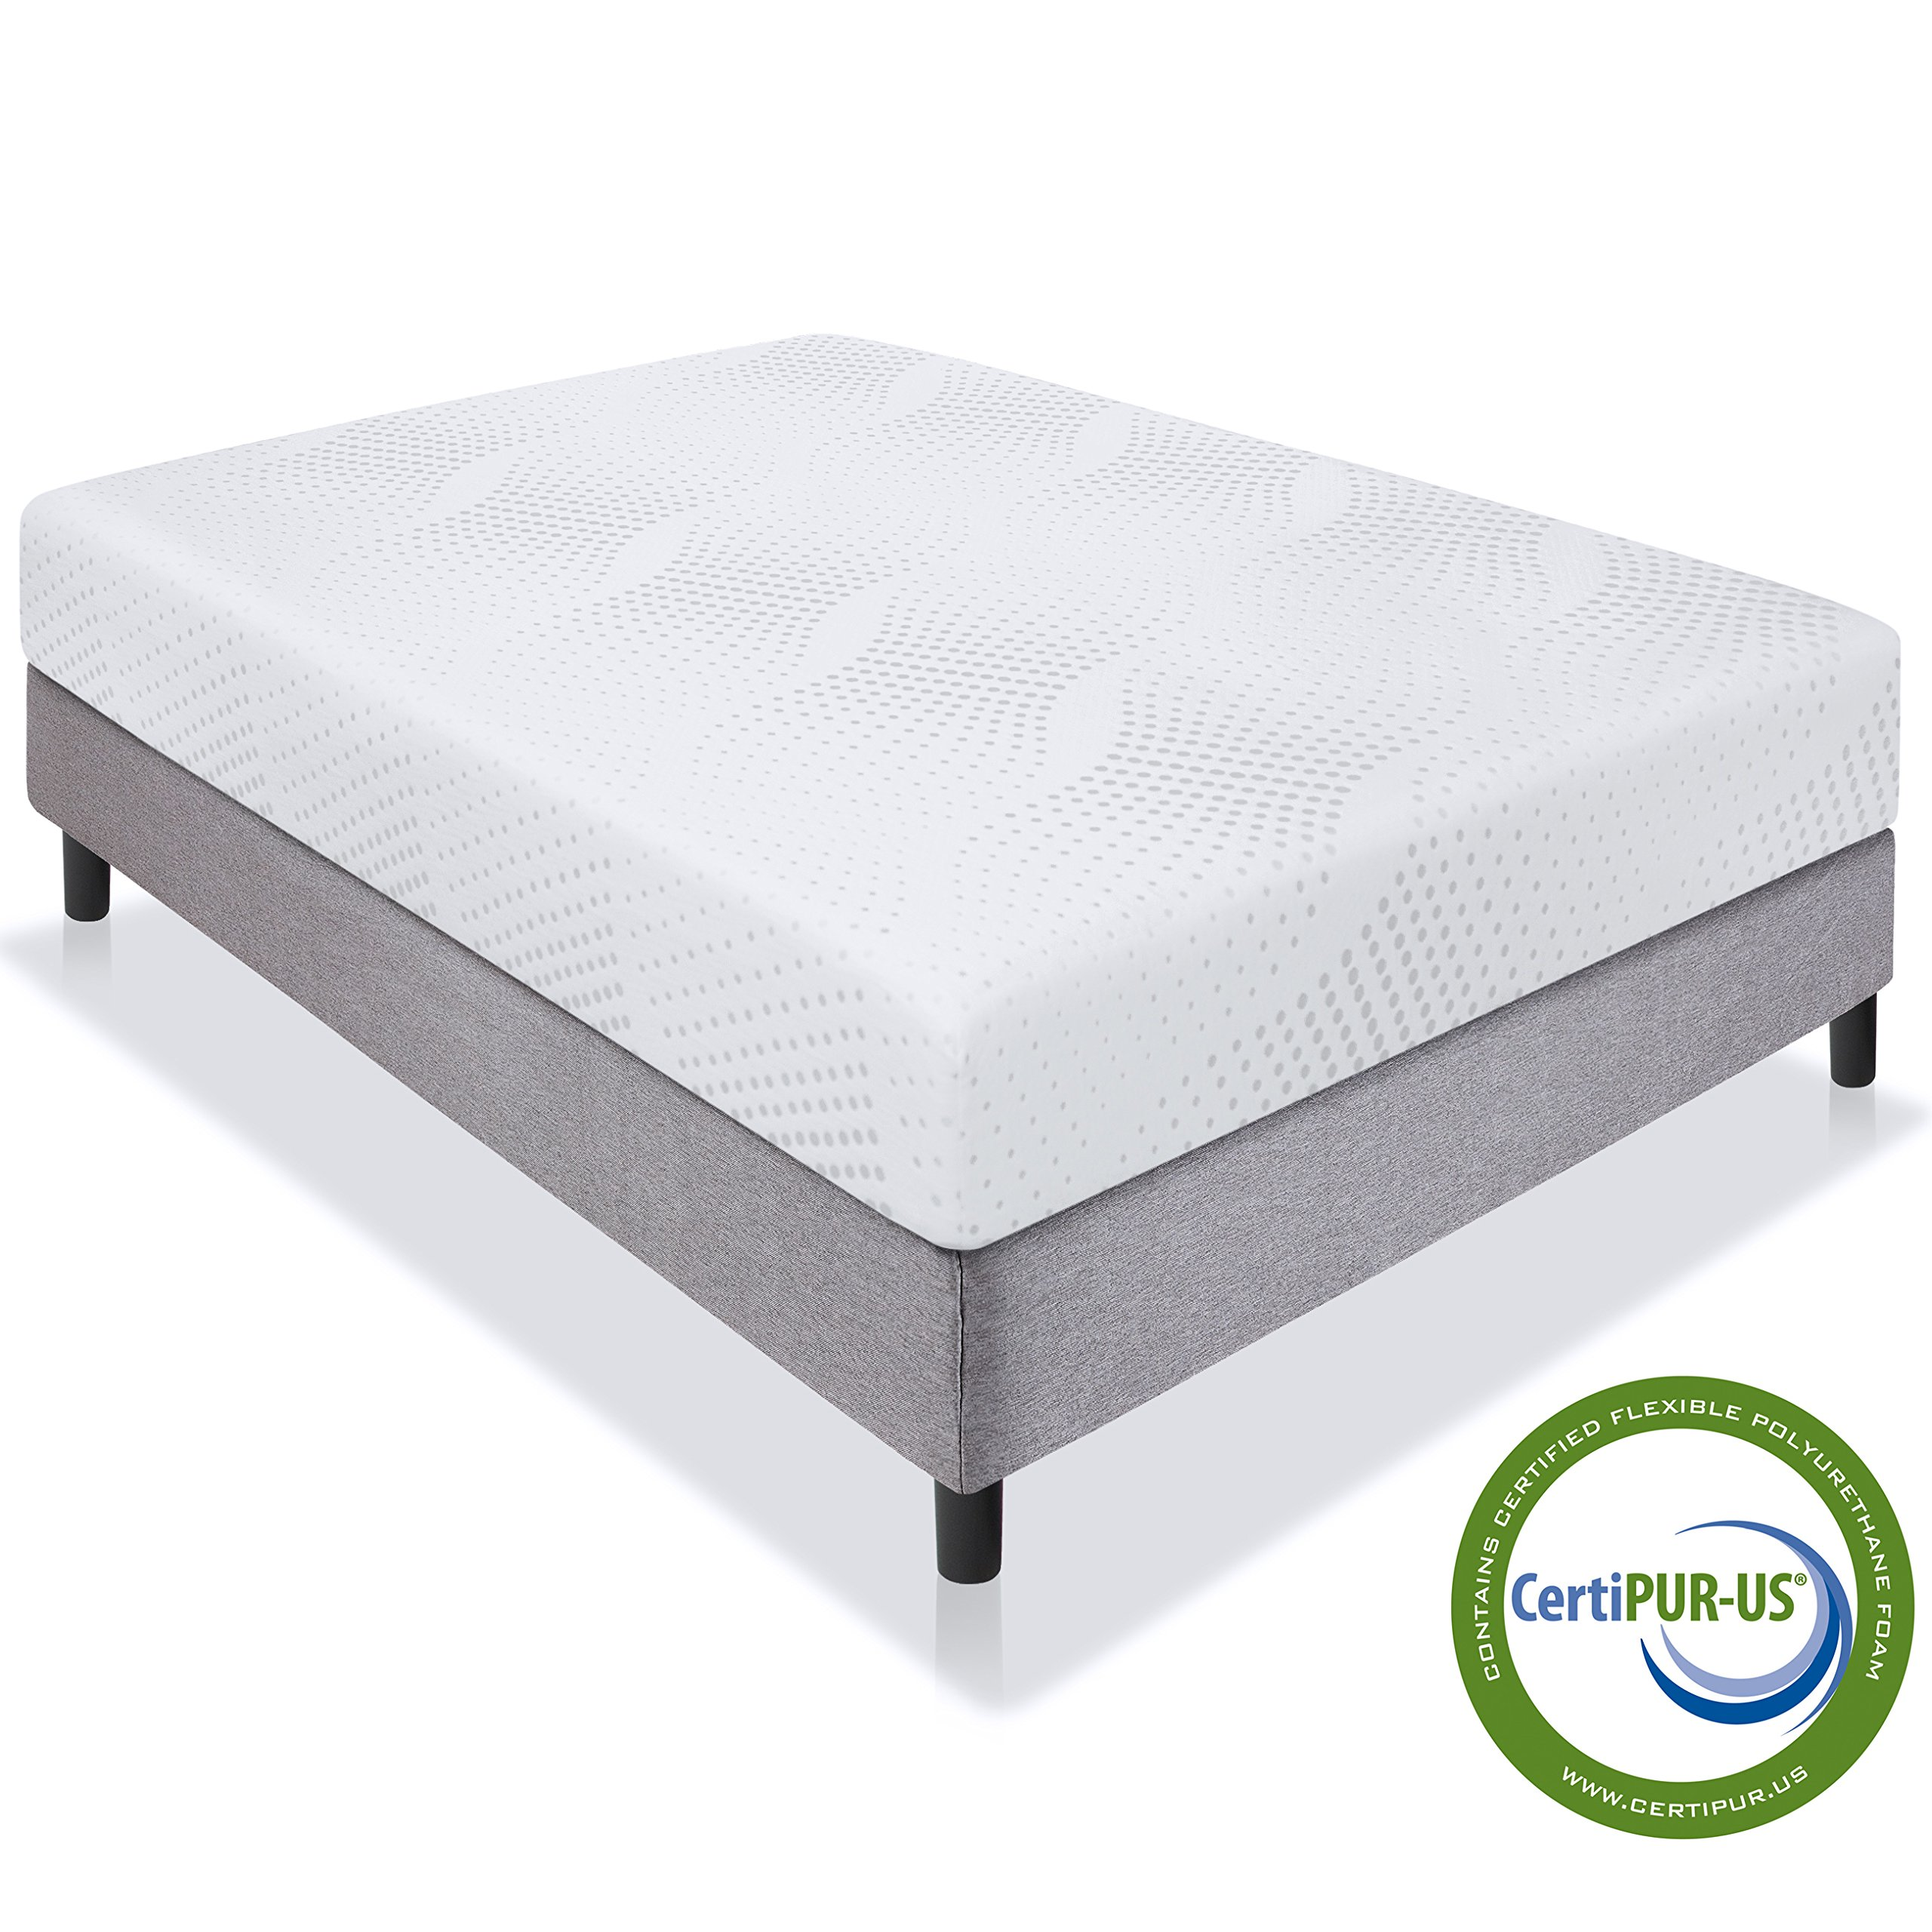 Best Choice Products 10'' Dual Layered Memory Foam Mattress Full- CertiPUR-US Certified Foam